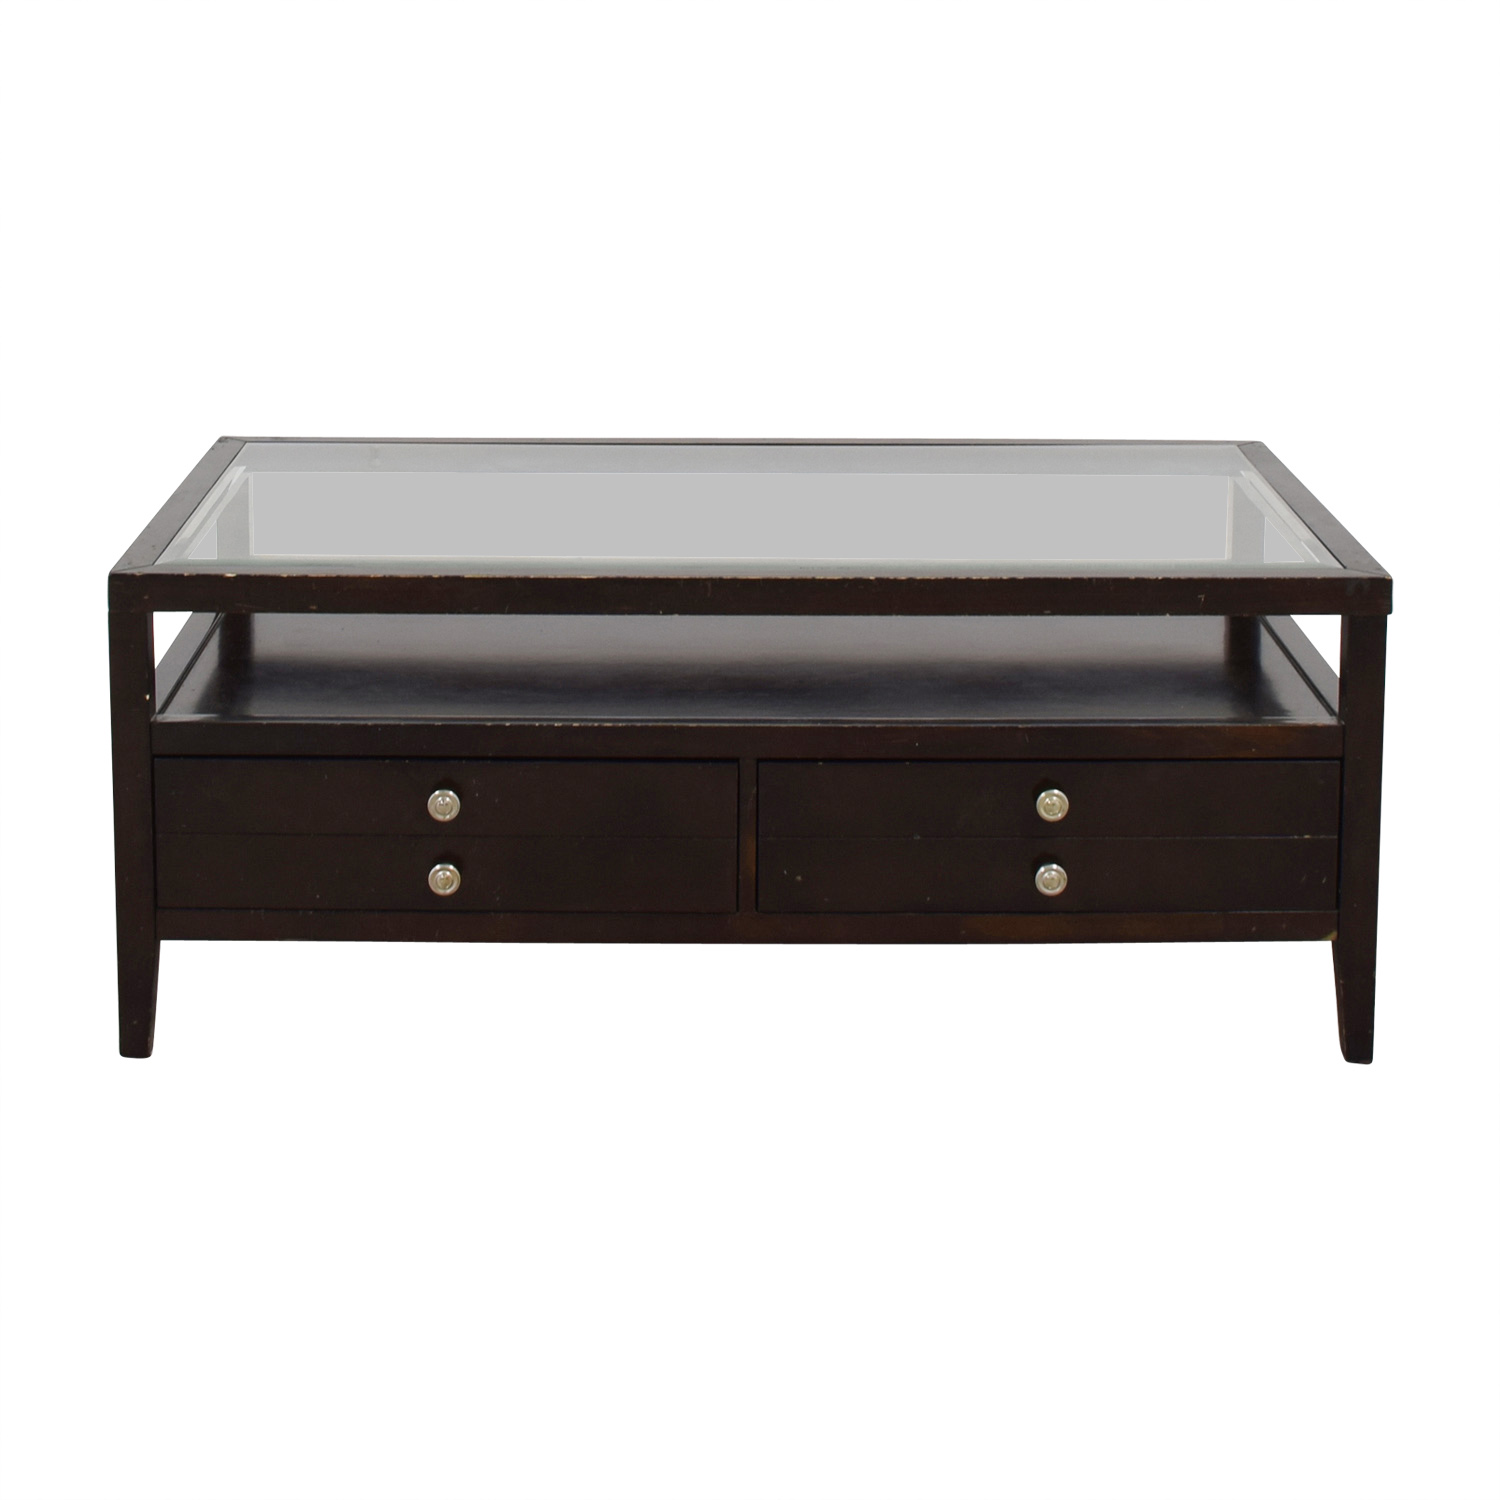 61 Off Black Wood And Gl Coffee Table Tables